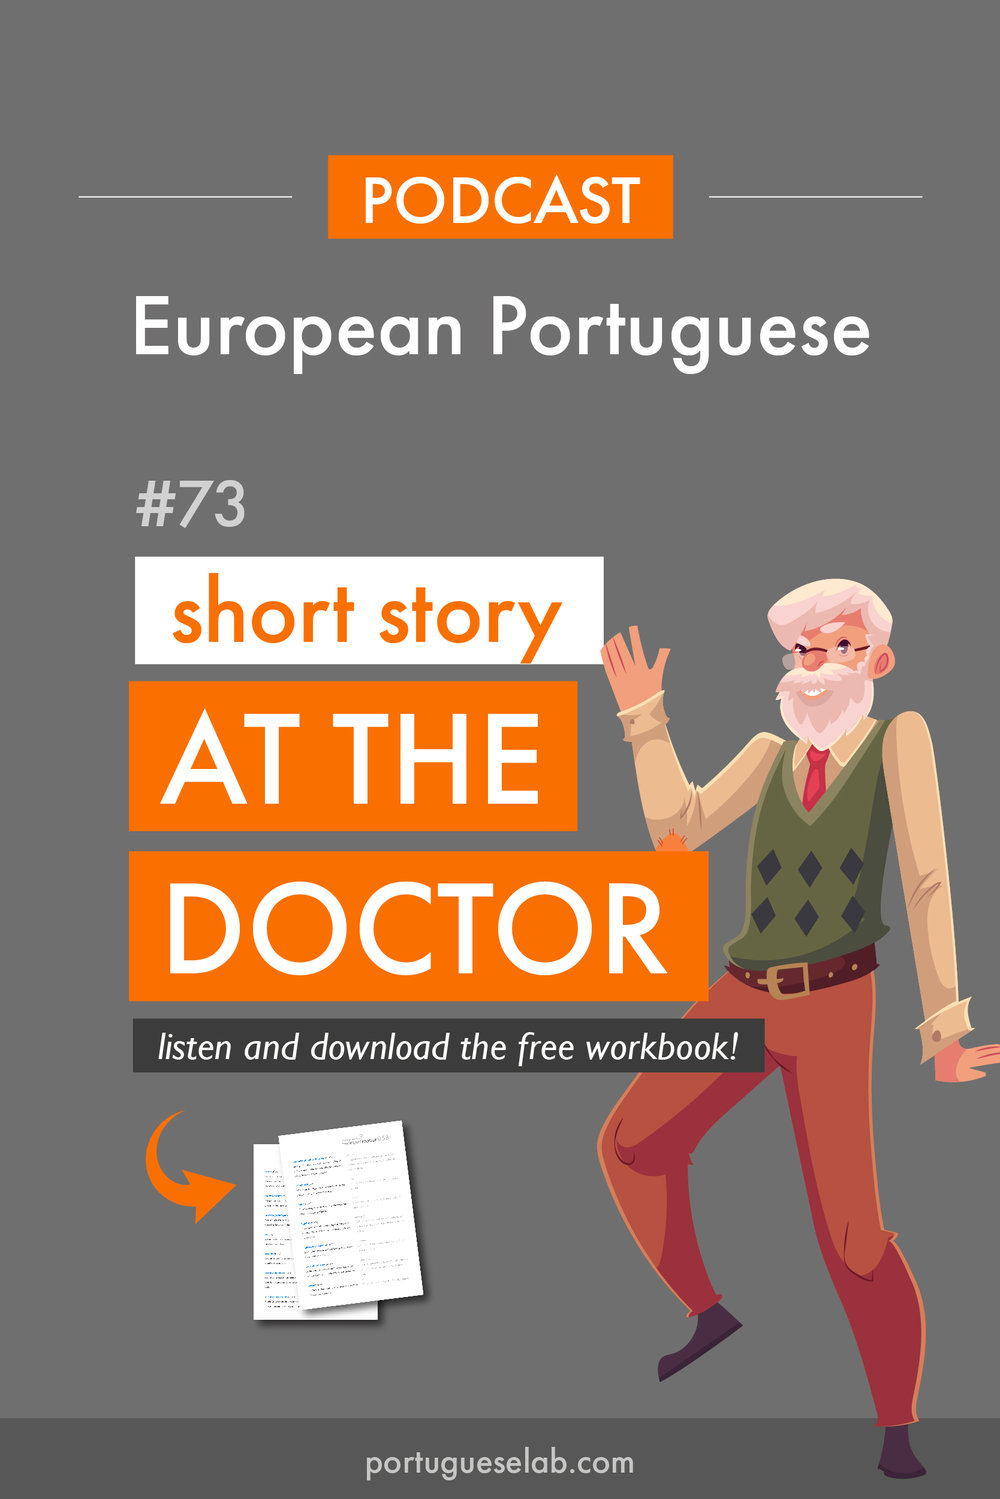 Portuguese Lab Podcast - European Portuguese - 73 - Short story in European Portuguese at the doctors office.jpg